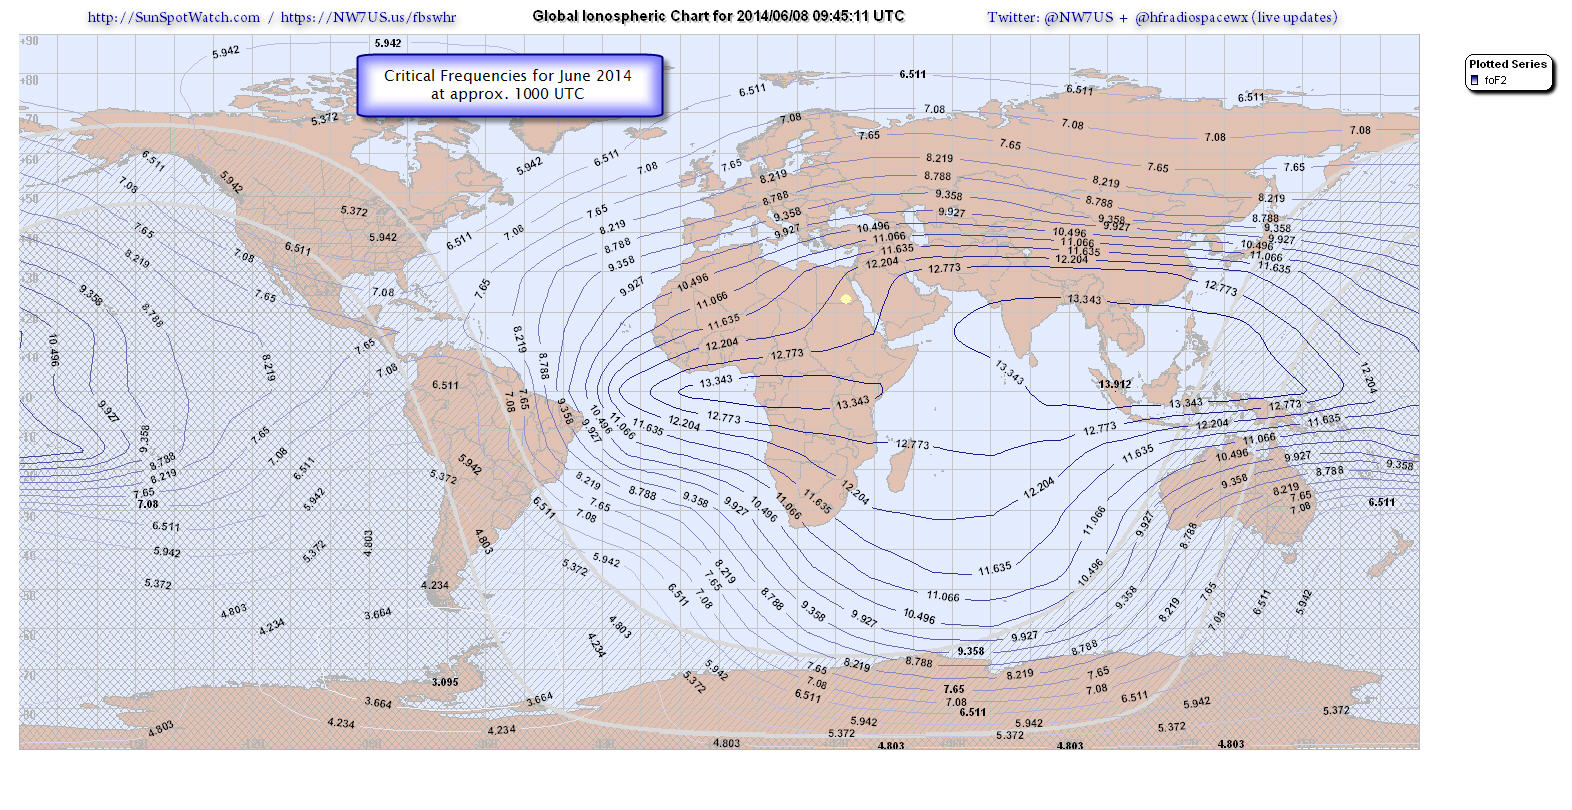 Critical foF2 map (2014 June 08 at 1000 UTC)